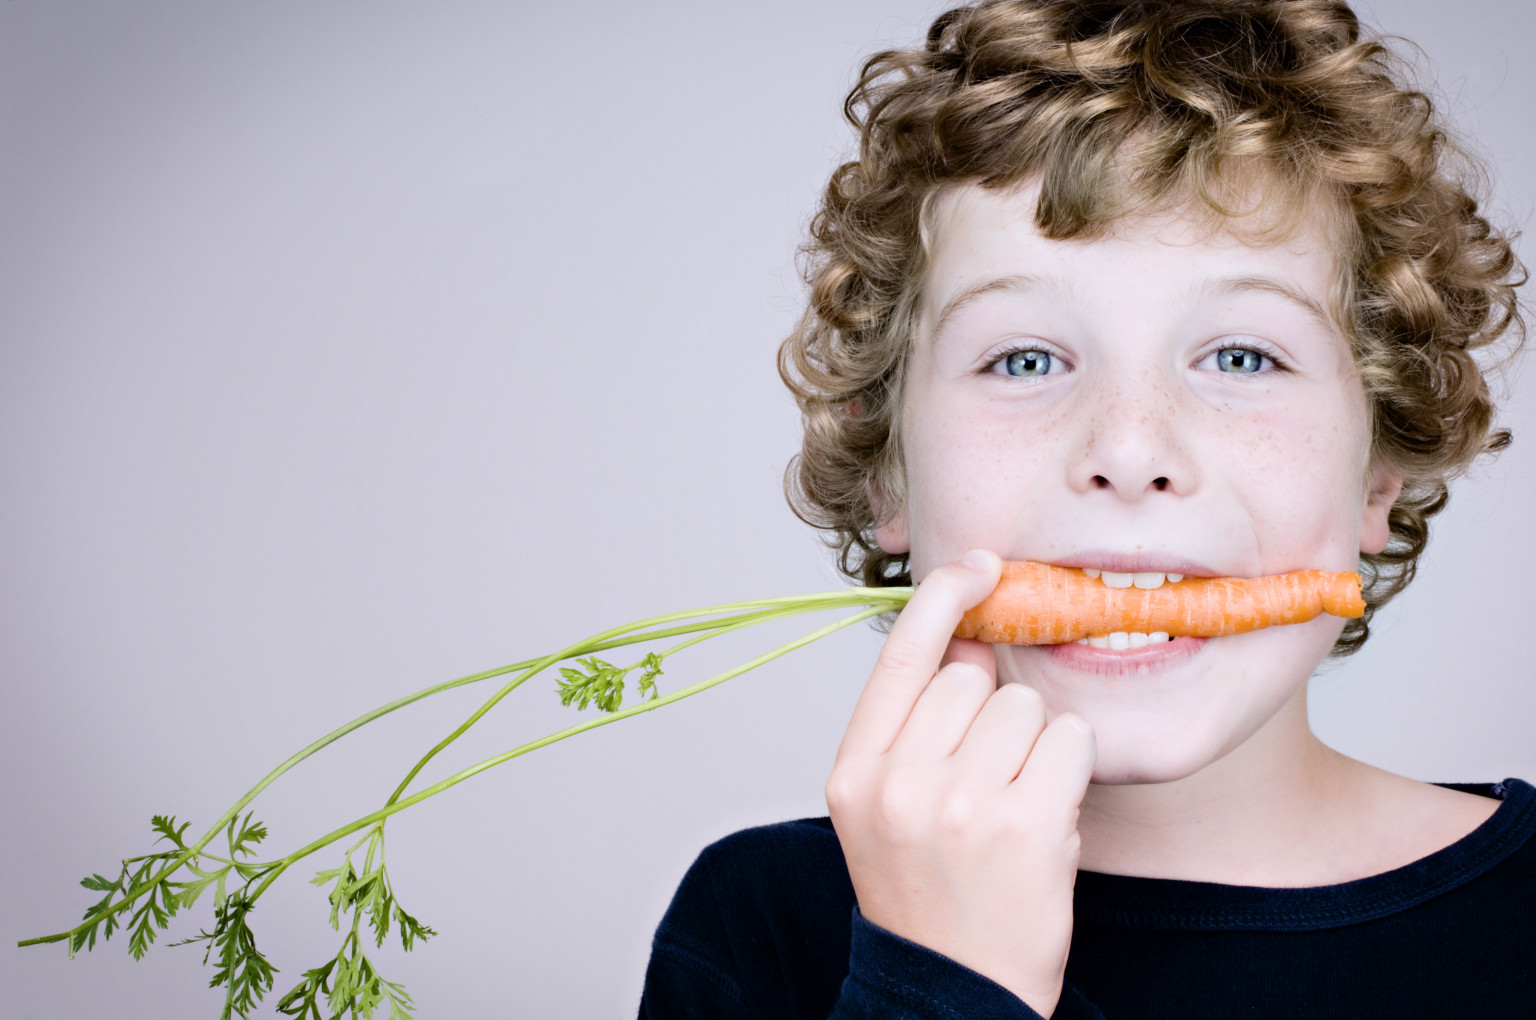 Thrive Nutrition Practice - getting your child to eat what you want